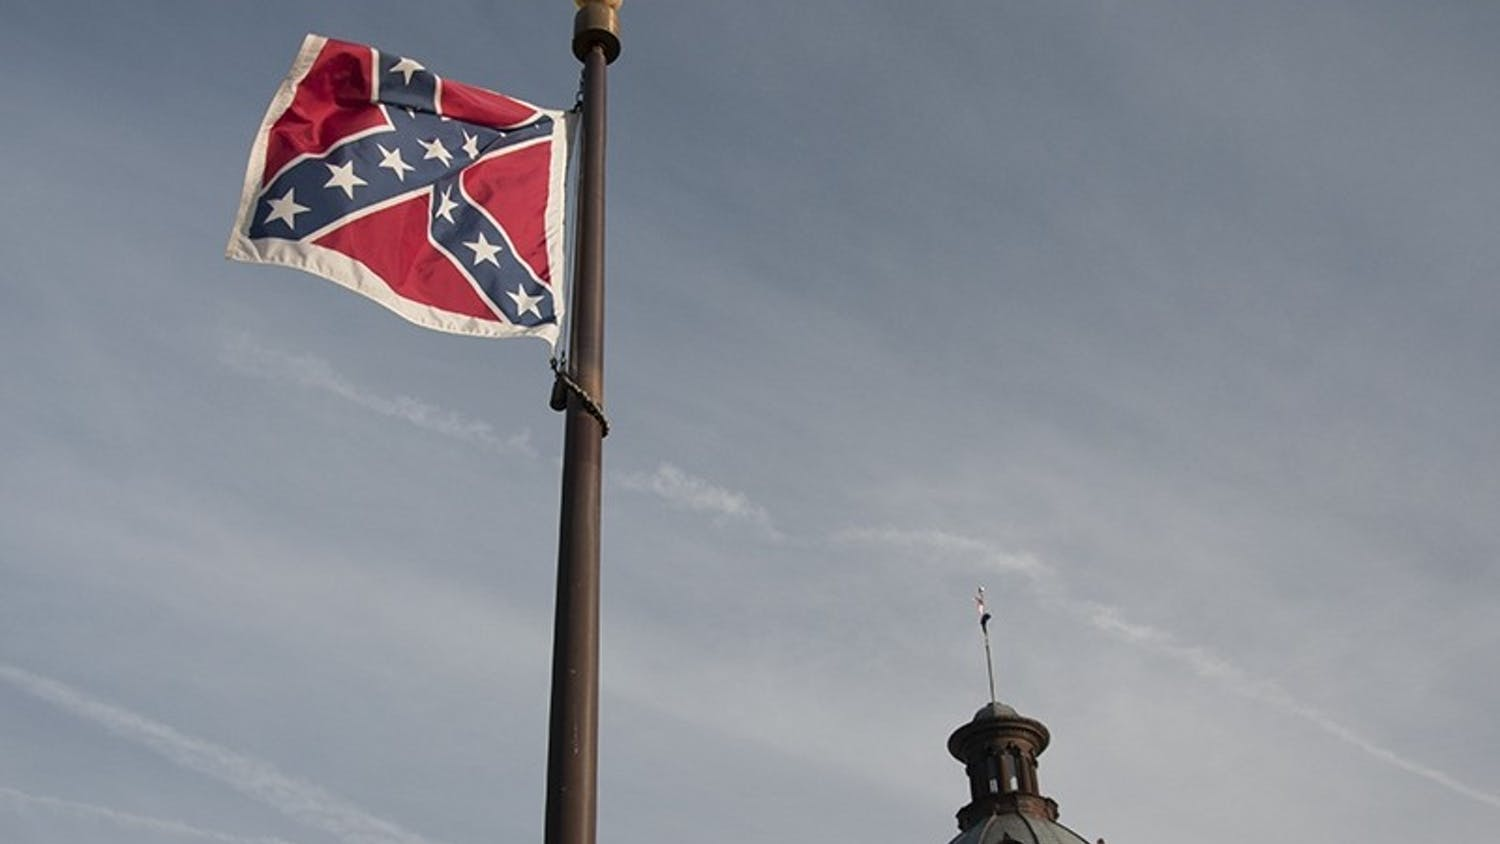 In the spring of 2000, legislation was passed to remove the Confederate battle flag from the State House dome.